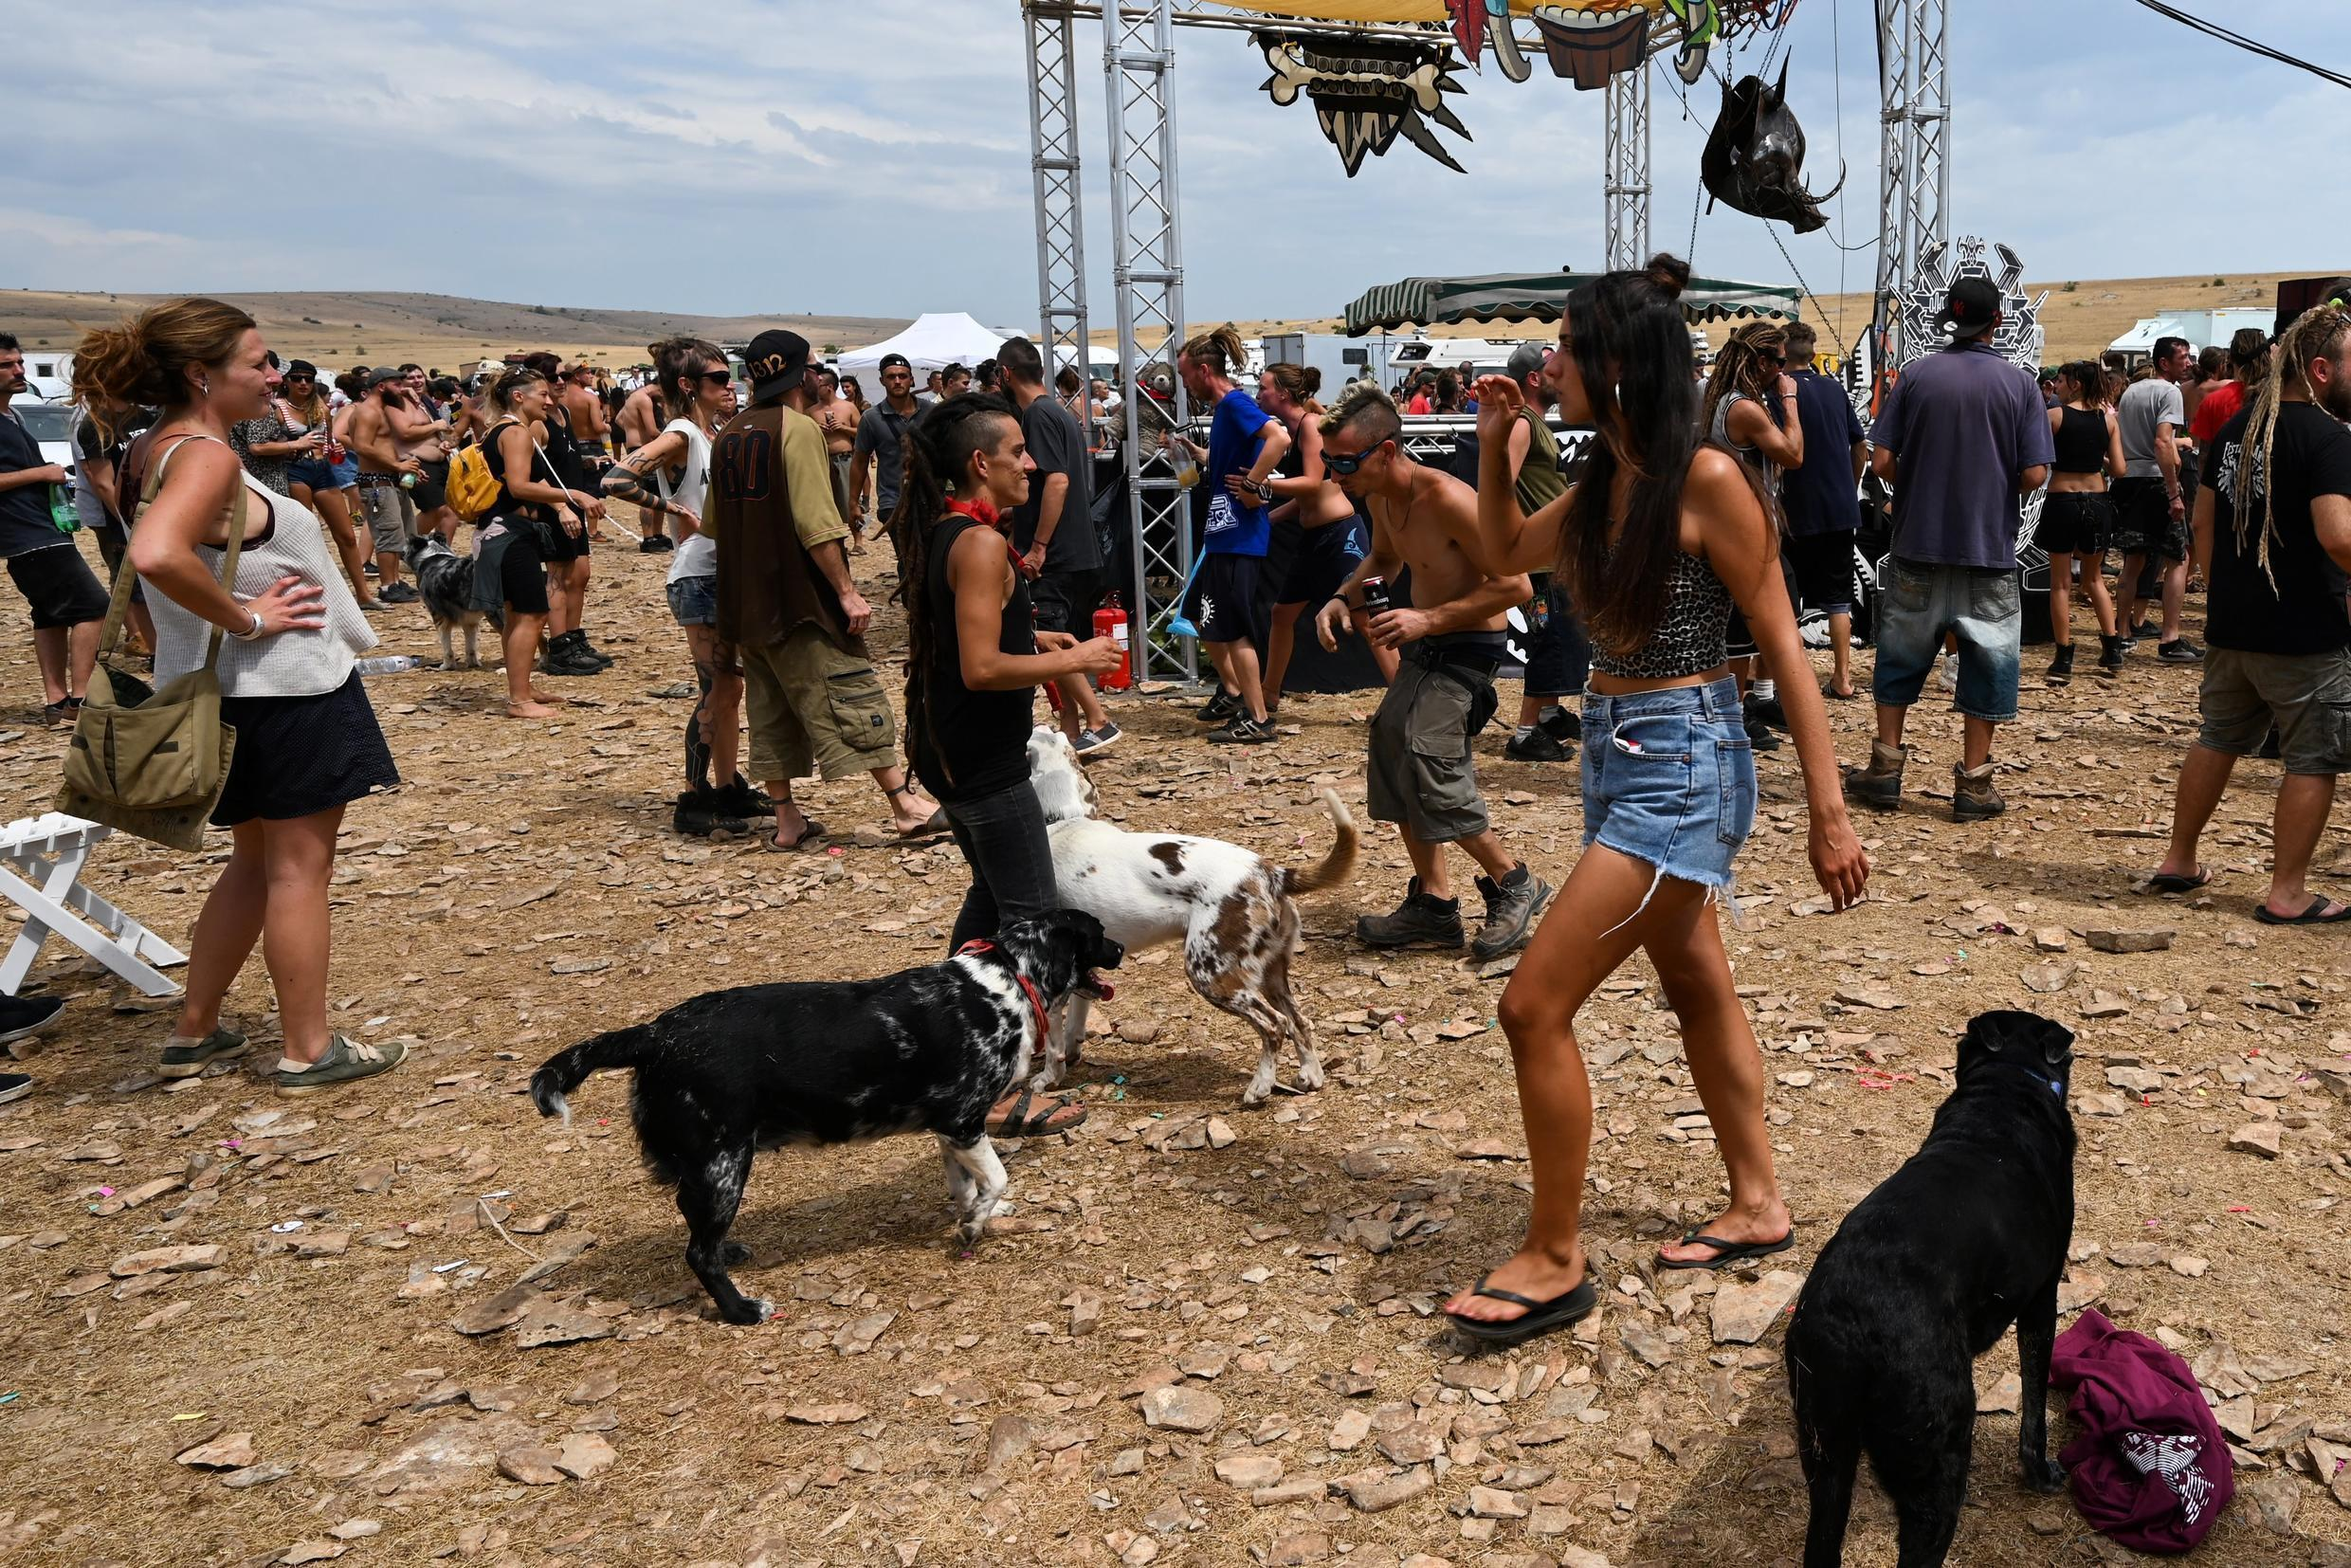 People dance and attend a rave party, on agricultural land in Causse Mejean, in the heart of the Cevennes National Park, southern France on 10 August 2020, despite the limitations on gatherings linked to COVID-19.